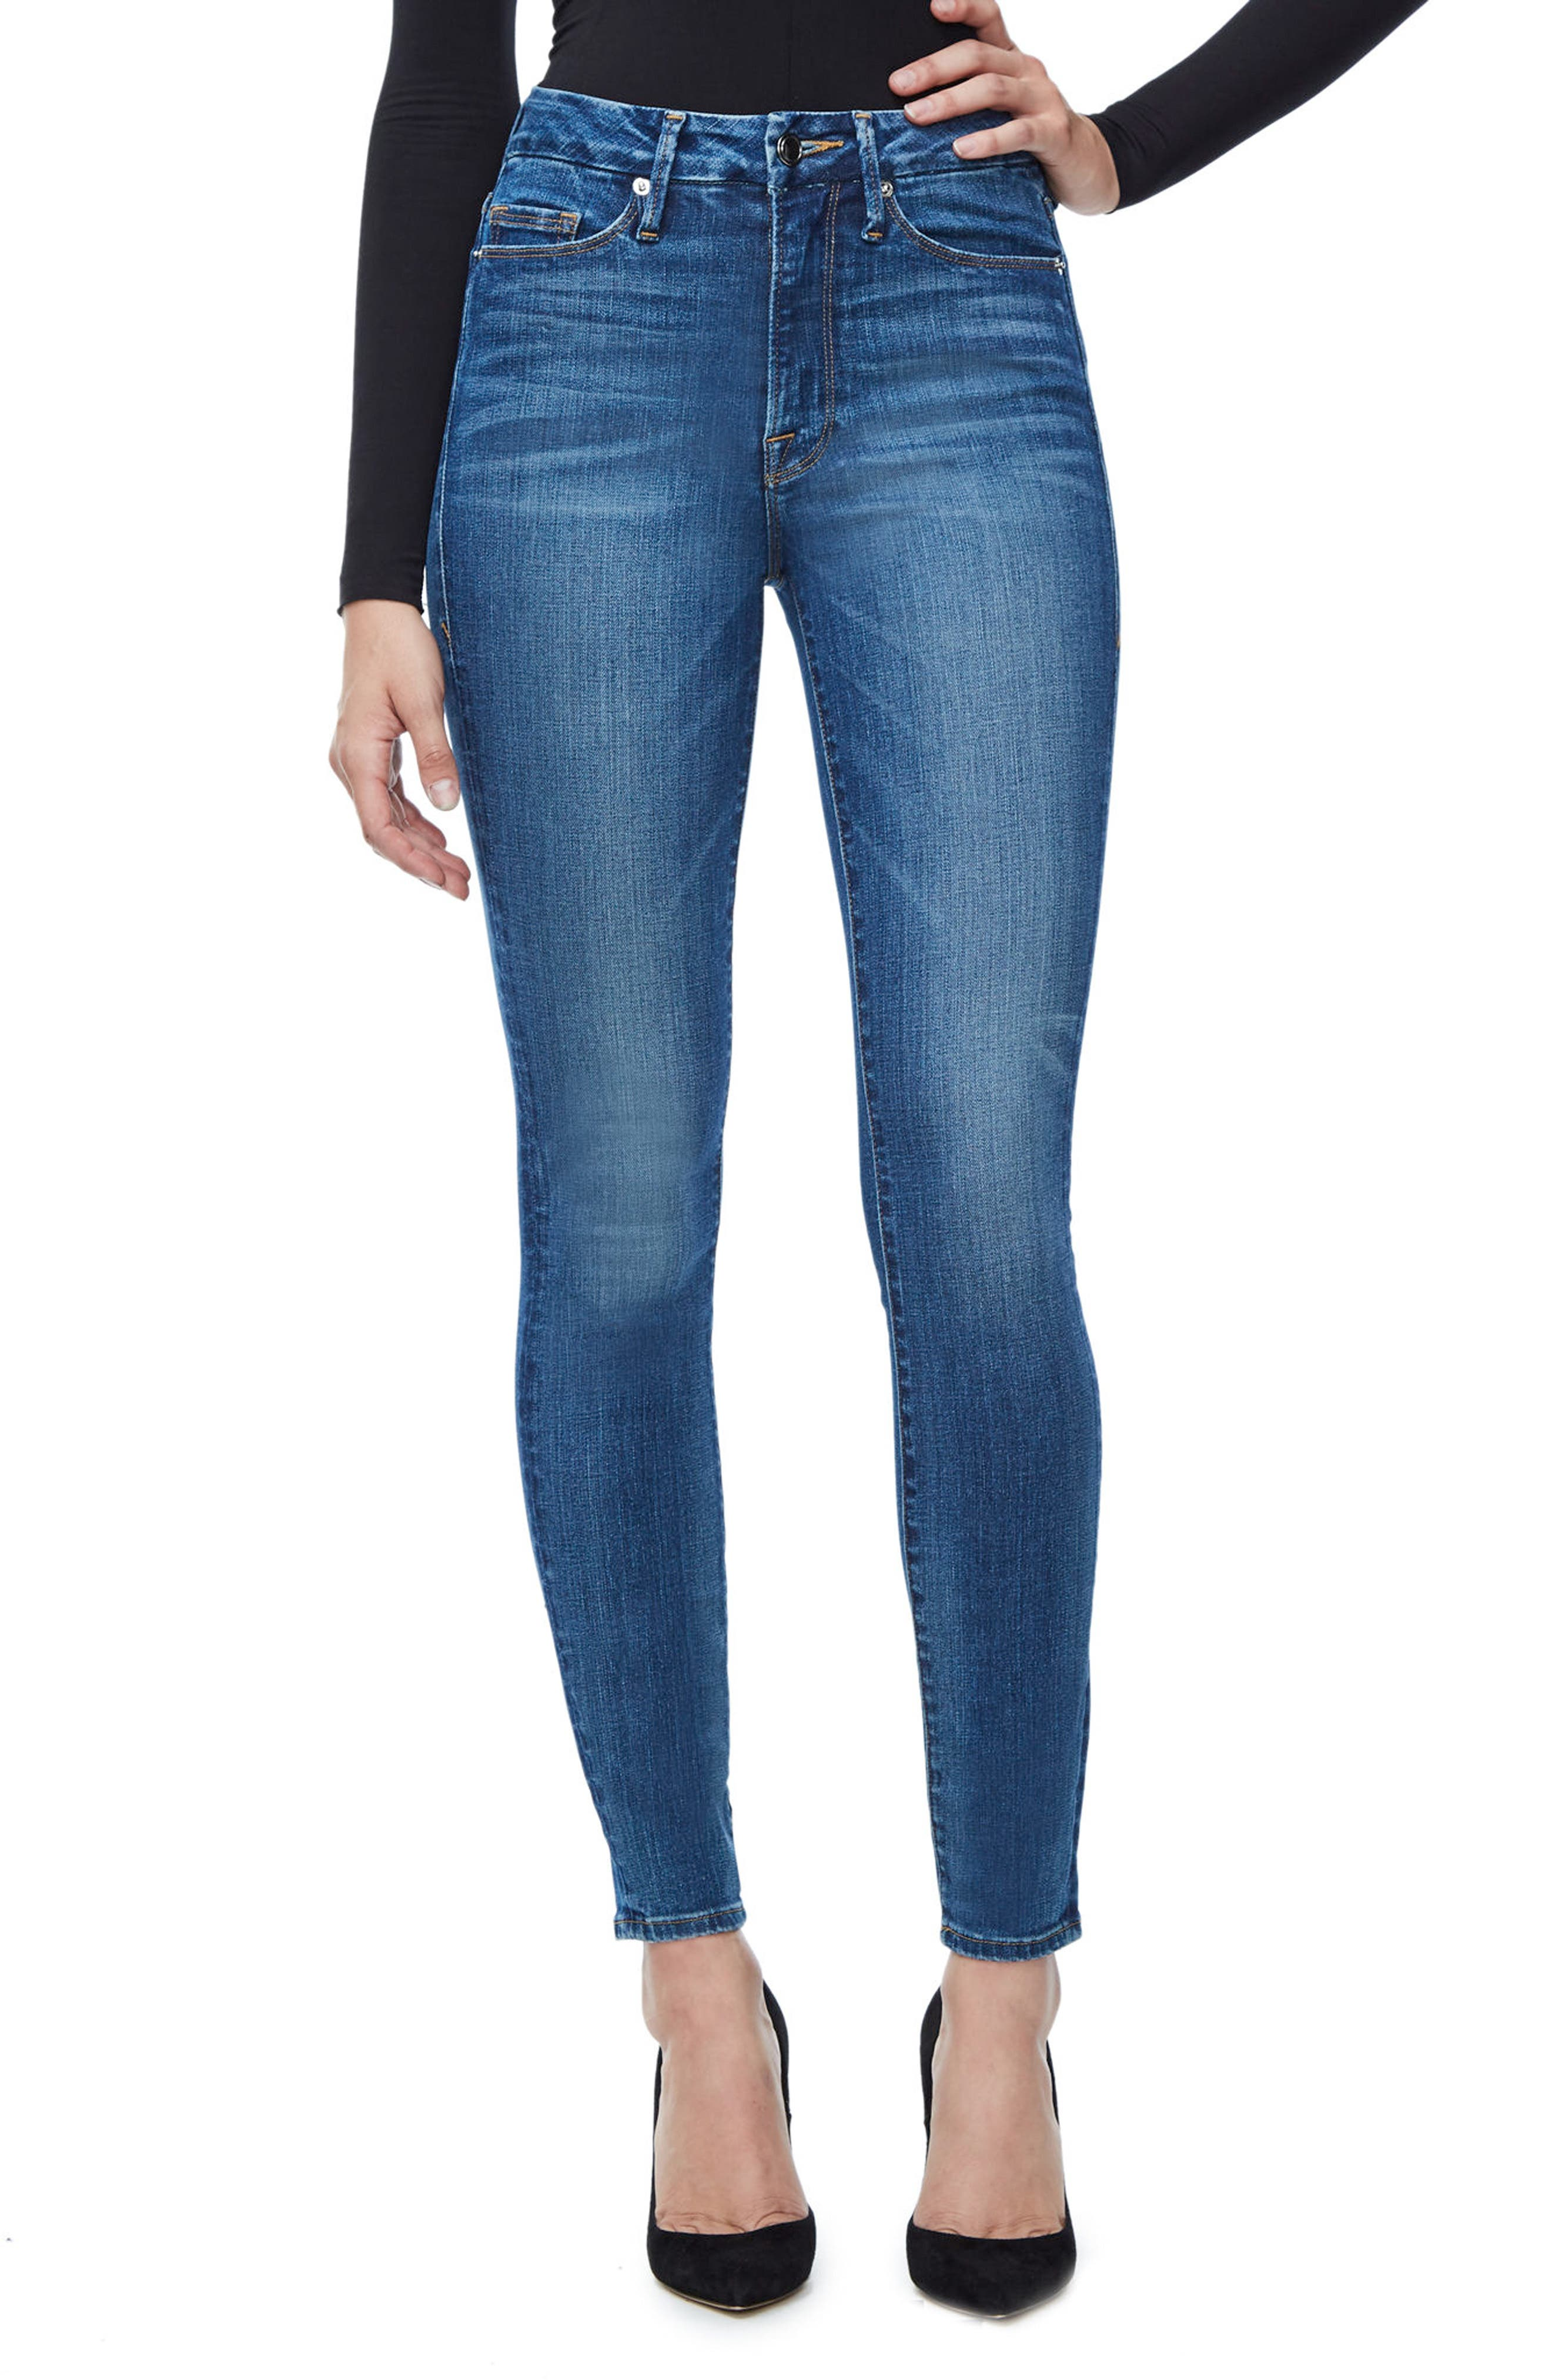 Alternate Image 1 Selected - Good American Good Waist High Waist Skinny Jeans (Blue 093) (Extended Sizes)